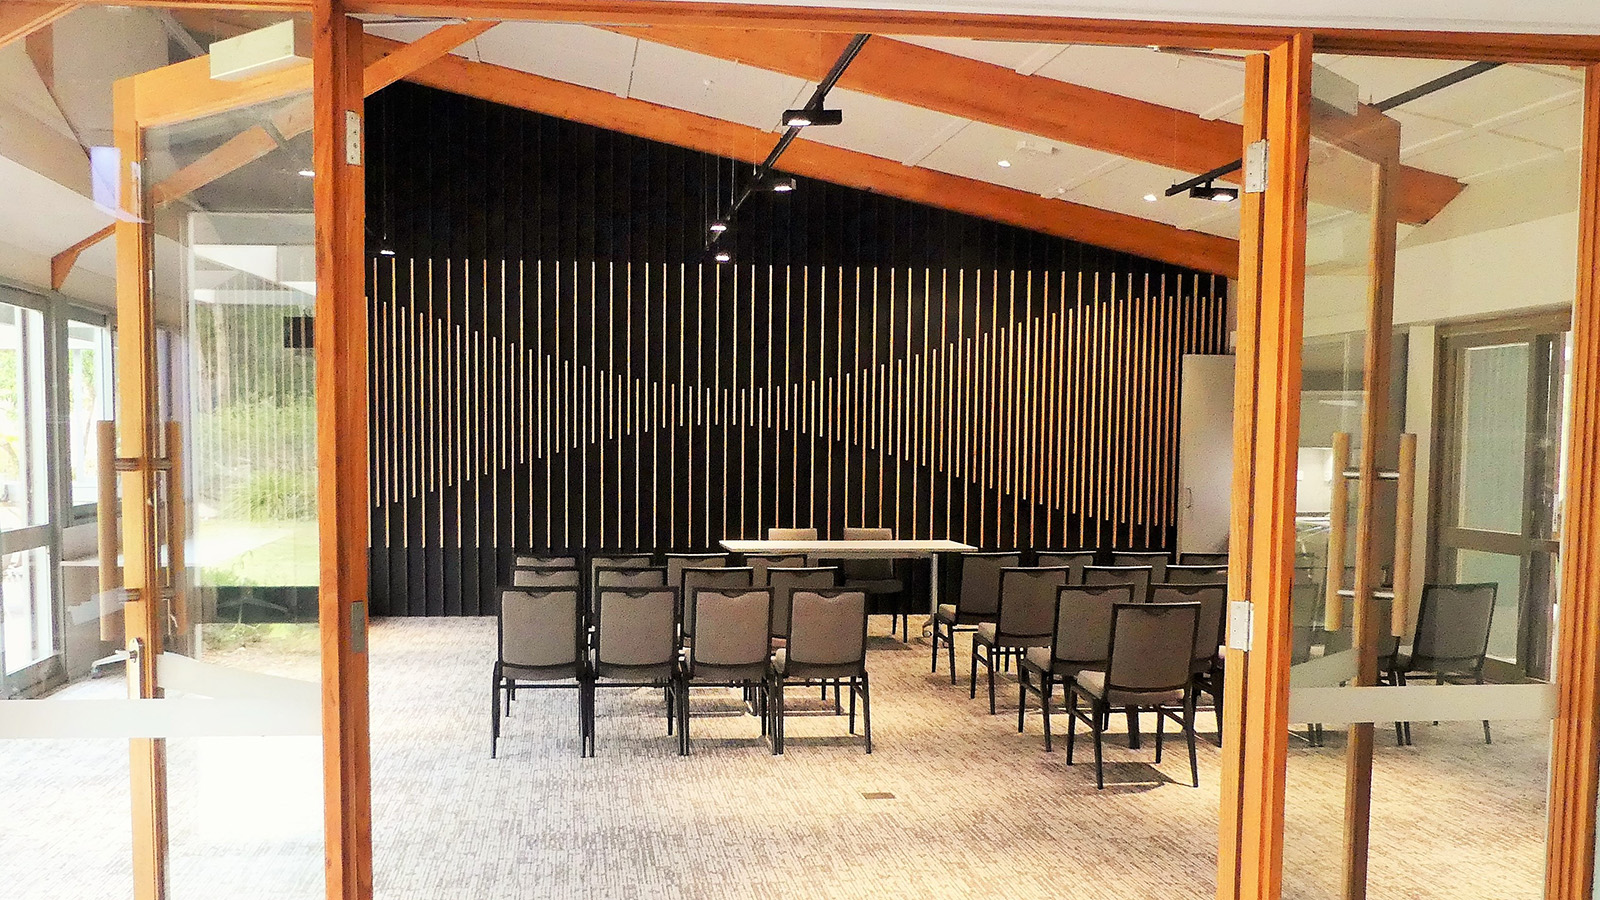 A basic ceremony/audience style seating arrangement in the Banksia Room